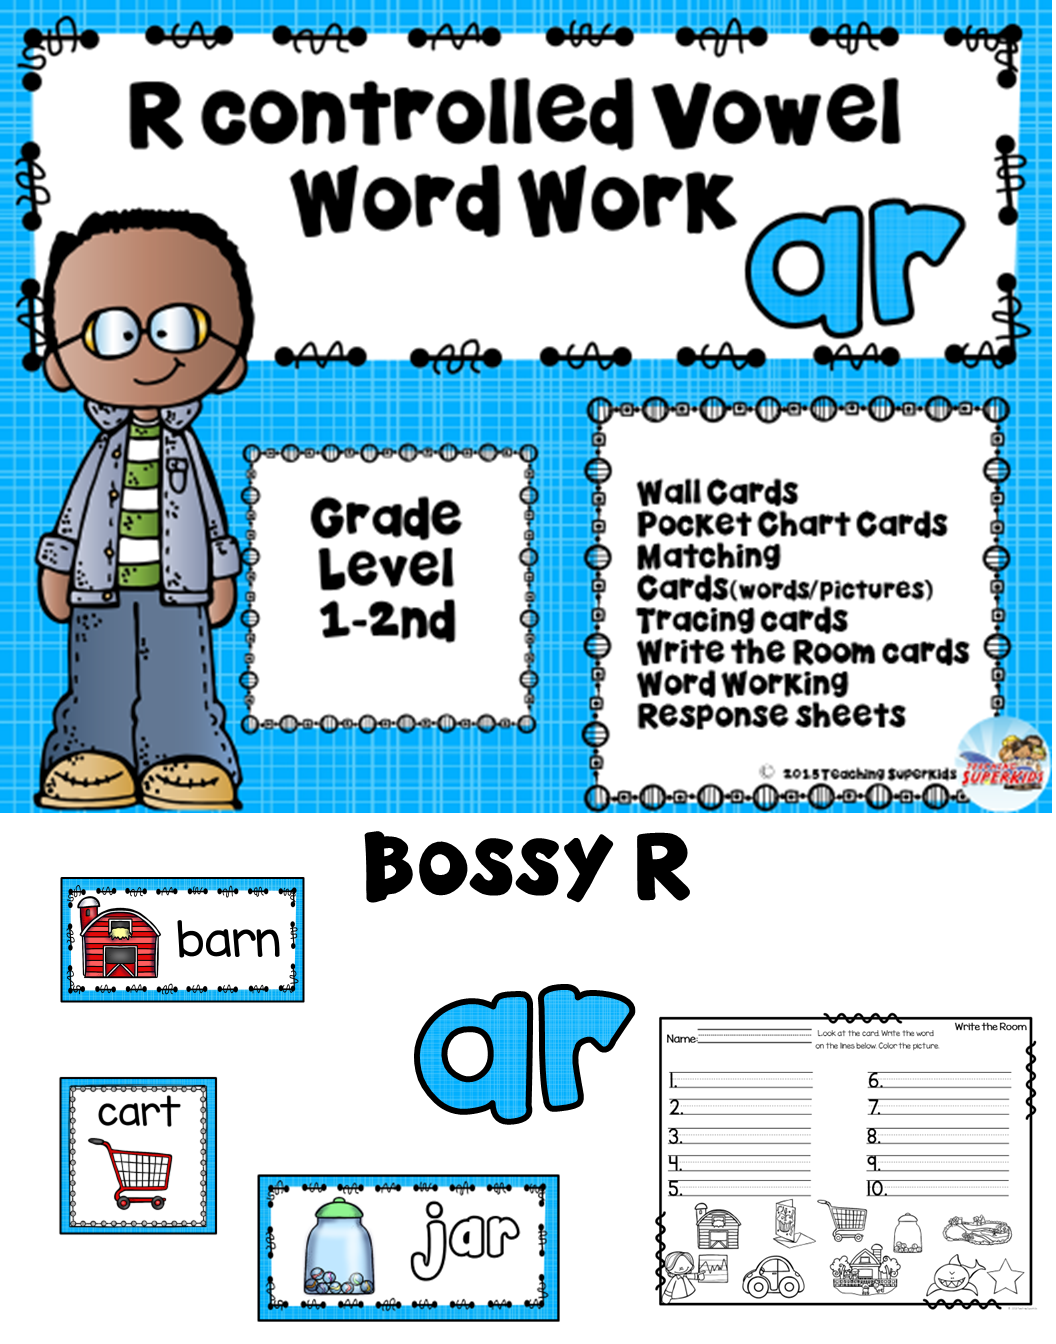 Bossy R Worksheets R Controlled Vowel Sounds With